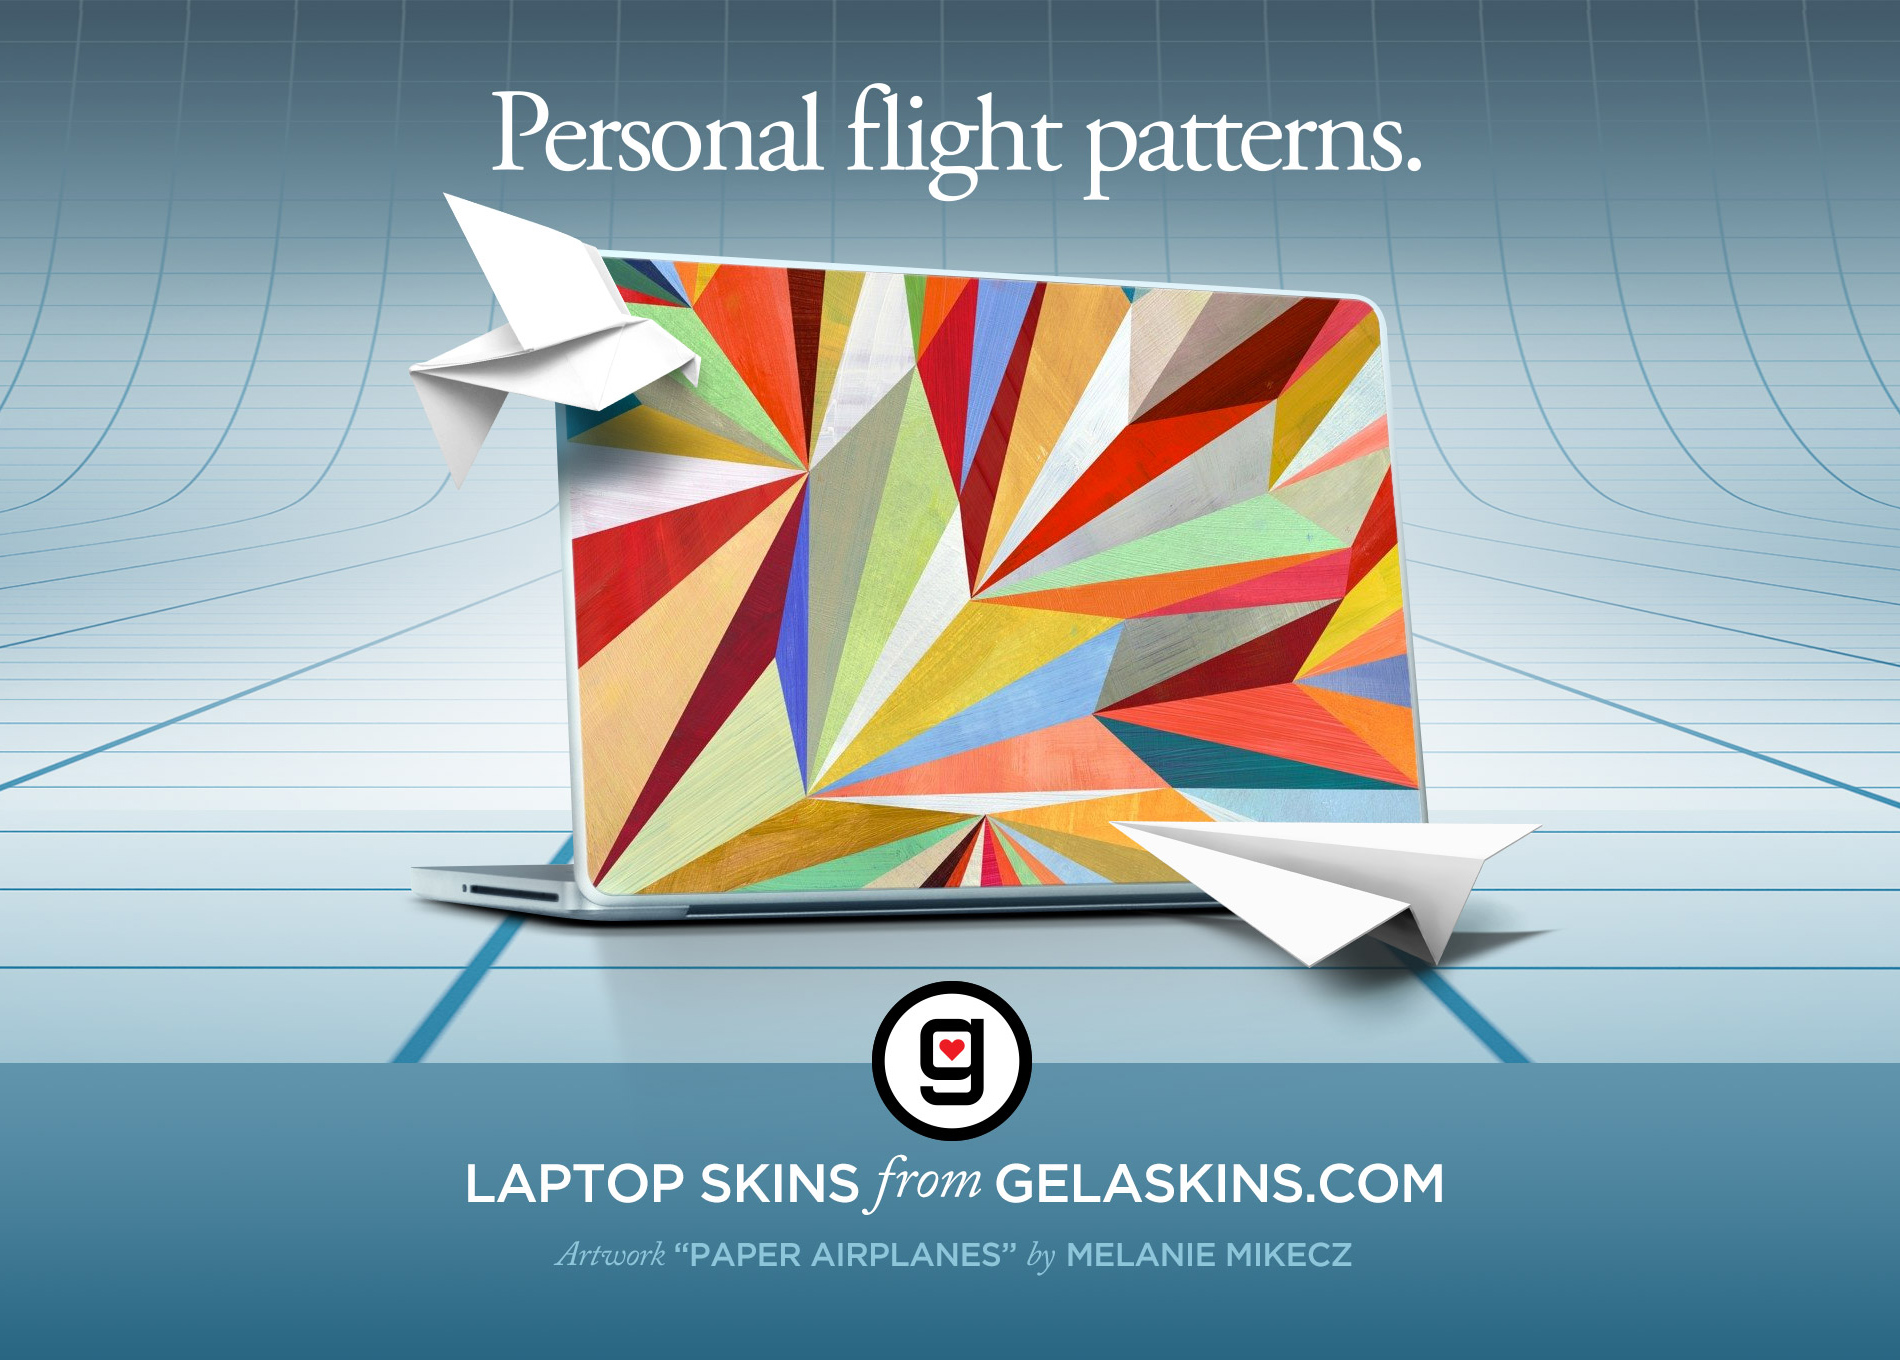 Ad campaign - My relationship with GelaSkins began as an artist contributor, a partnership that expanded to include some creative advertising and consulting. The result was a series of laptop skin ads that combined product shots with design and copywriting.